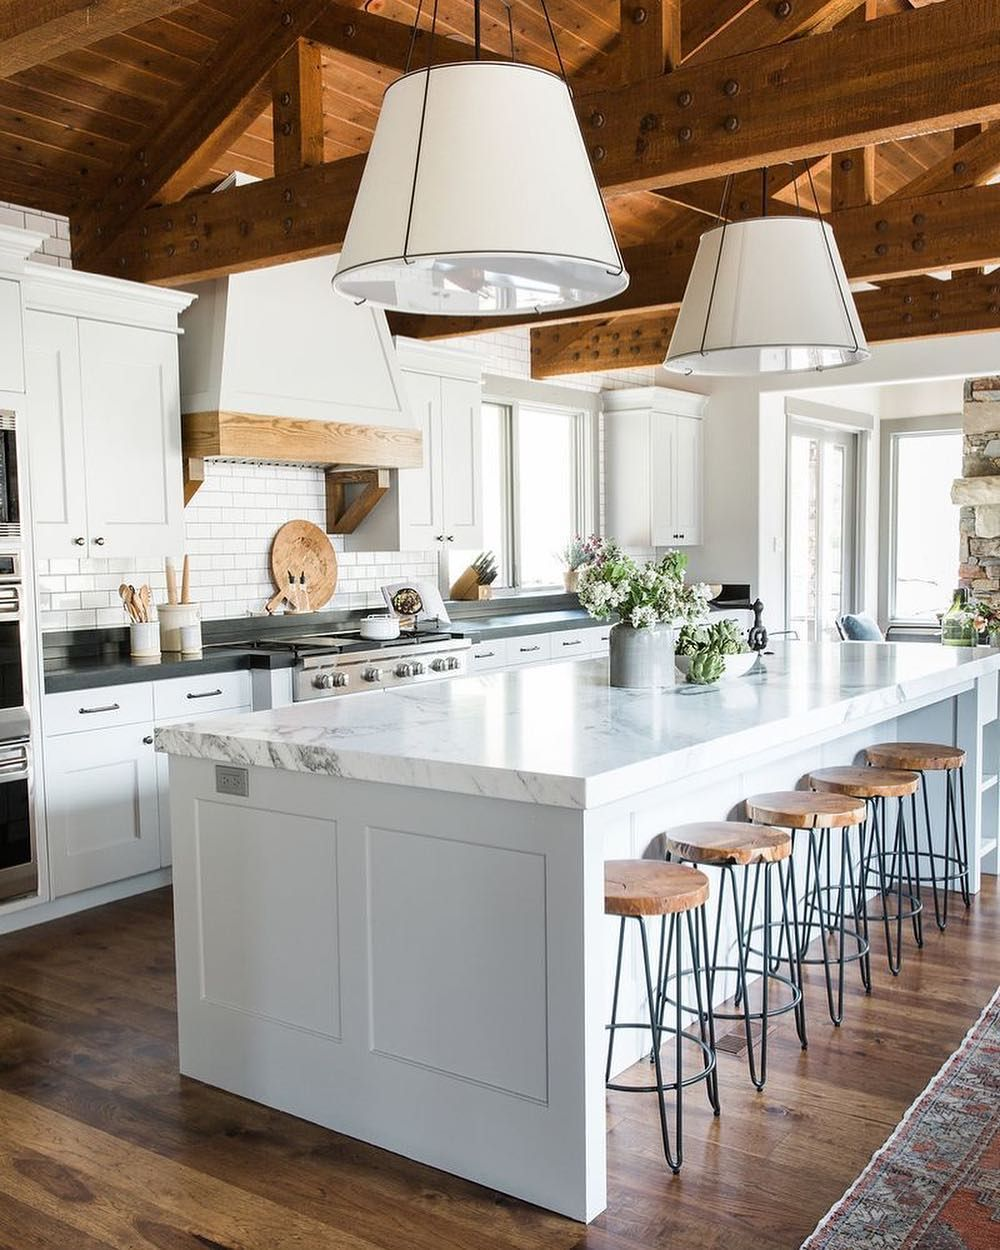 timeless kitchen trends that never go out of style kitchen design home kitchens custom kitchens on kitchen decor trends id=86333